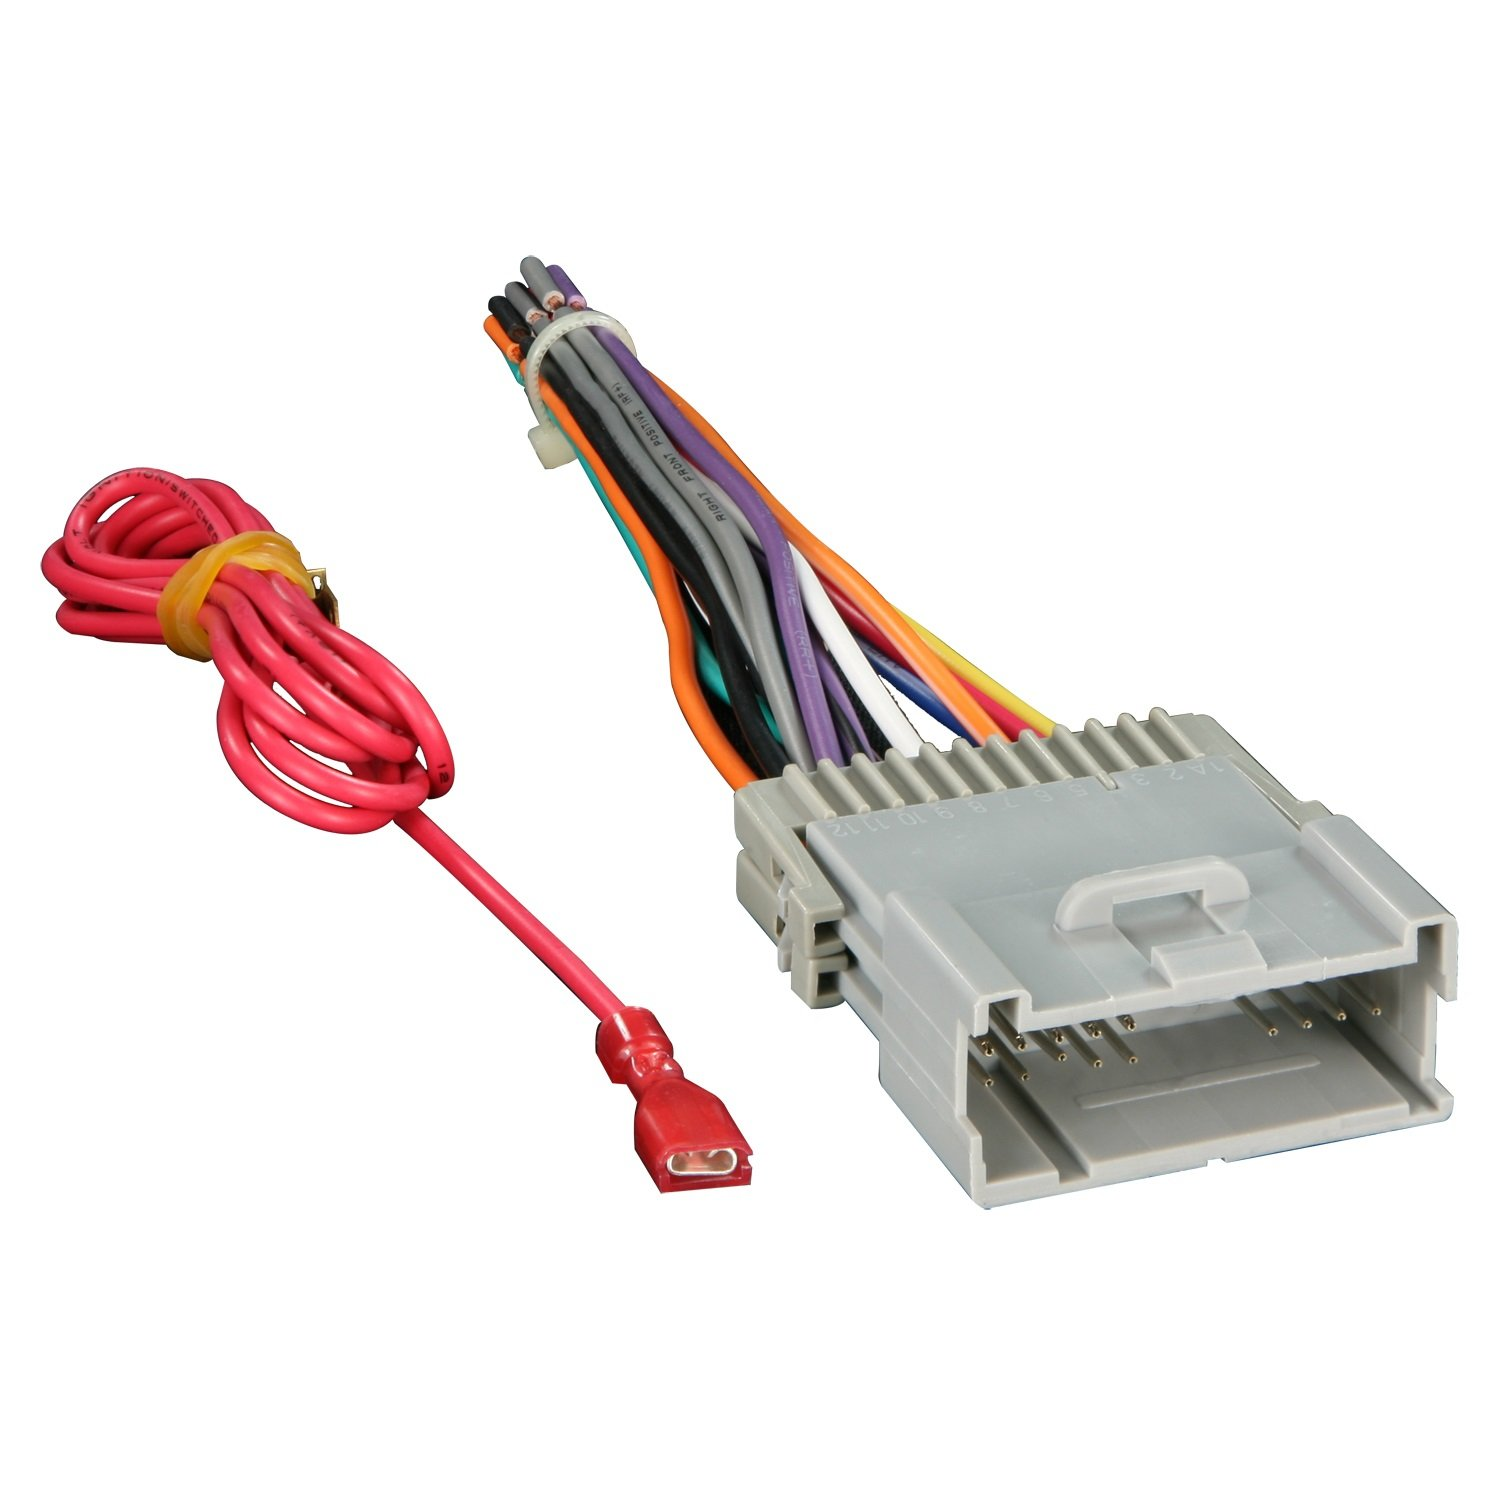 61eewxp9orL._SL1500_ amazon com metra 70 2003 radio wiring harness for gm 98 08 2003 Kia Sorento U Joint at reclaimingppi.co